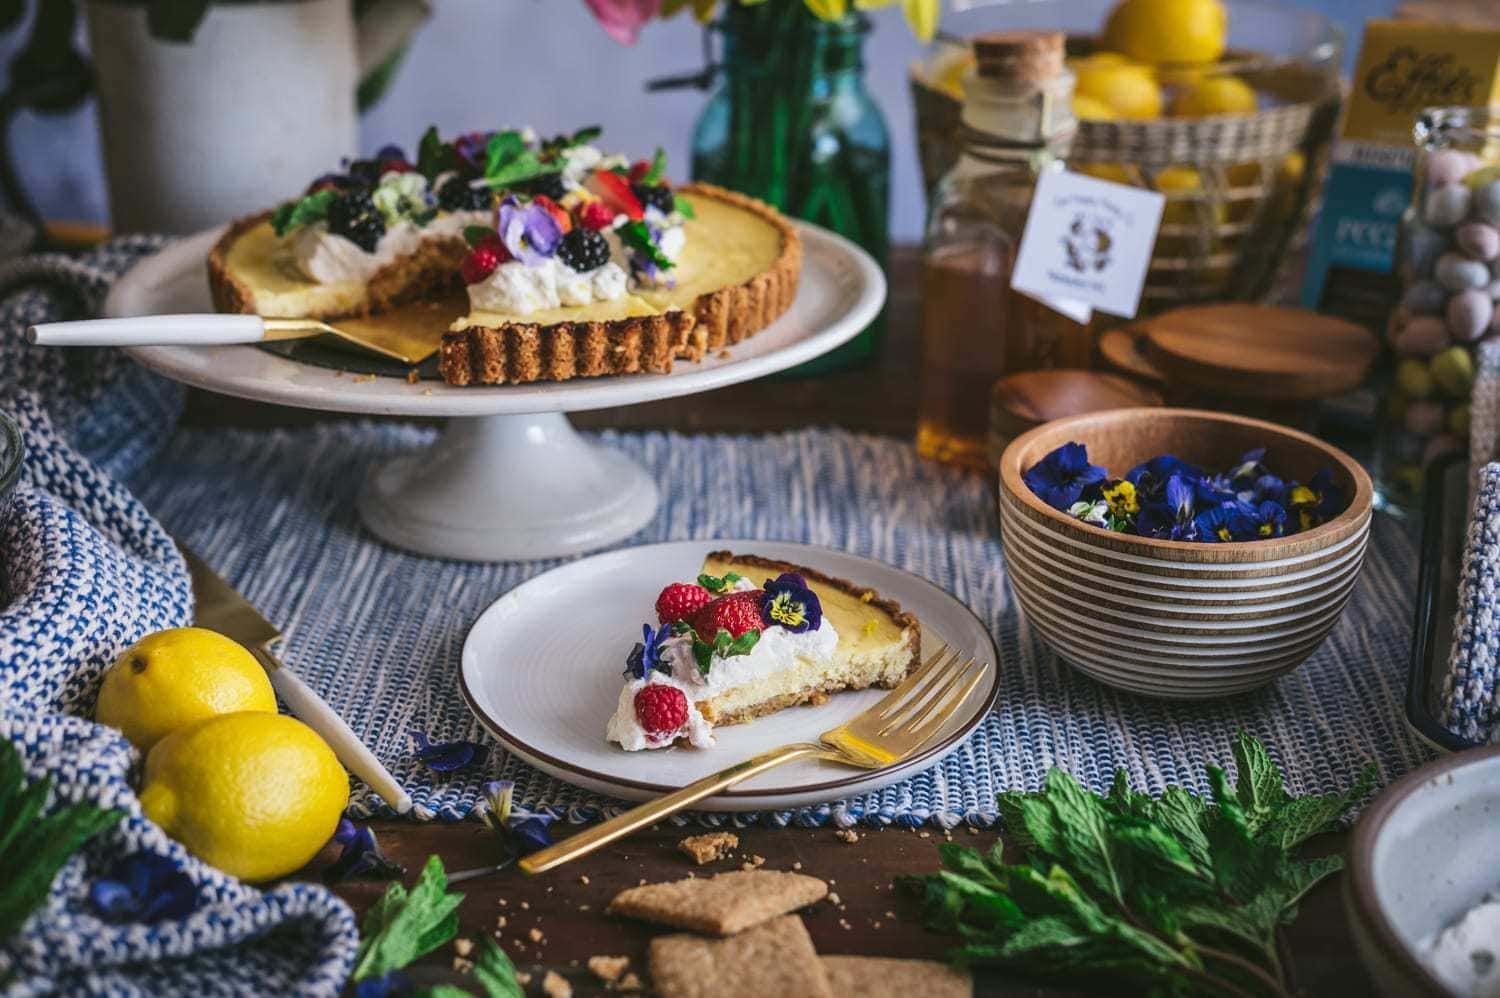 lemon honey ricotta pie qith whipped cream, berries and edible flowers with slice cut out